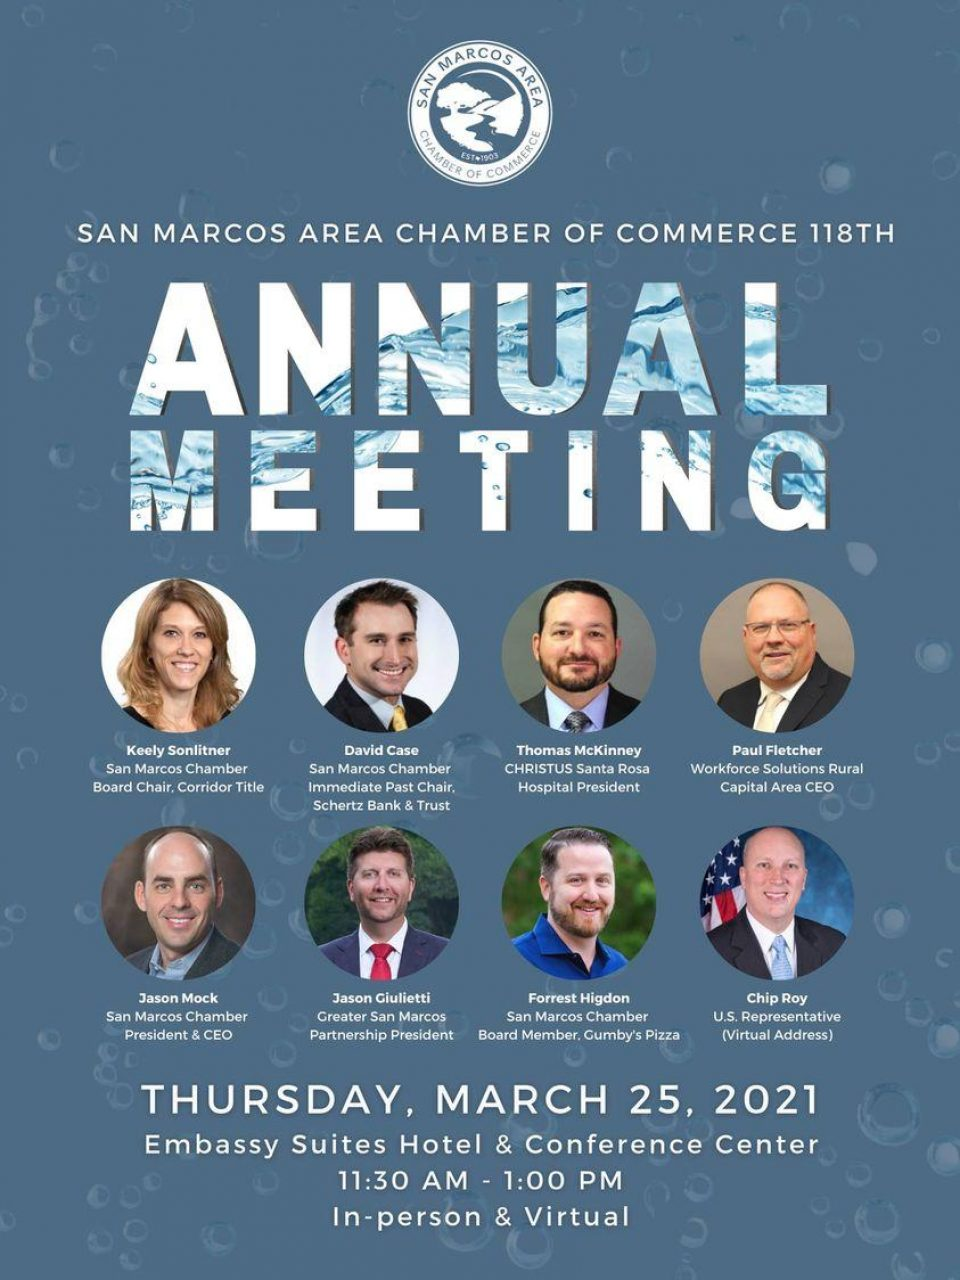 WSRCA to Take Part in San Marcos Area Chamber's Annual Meeting on March 25